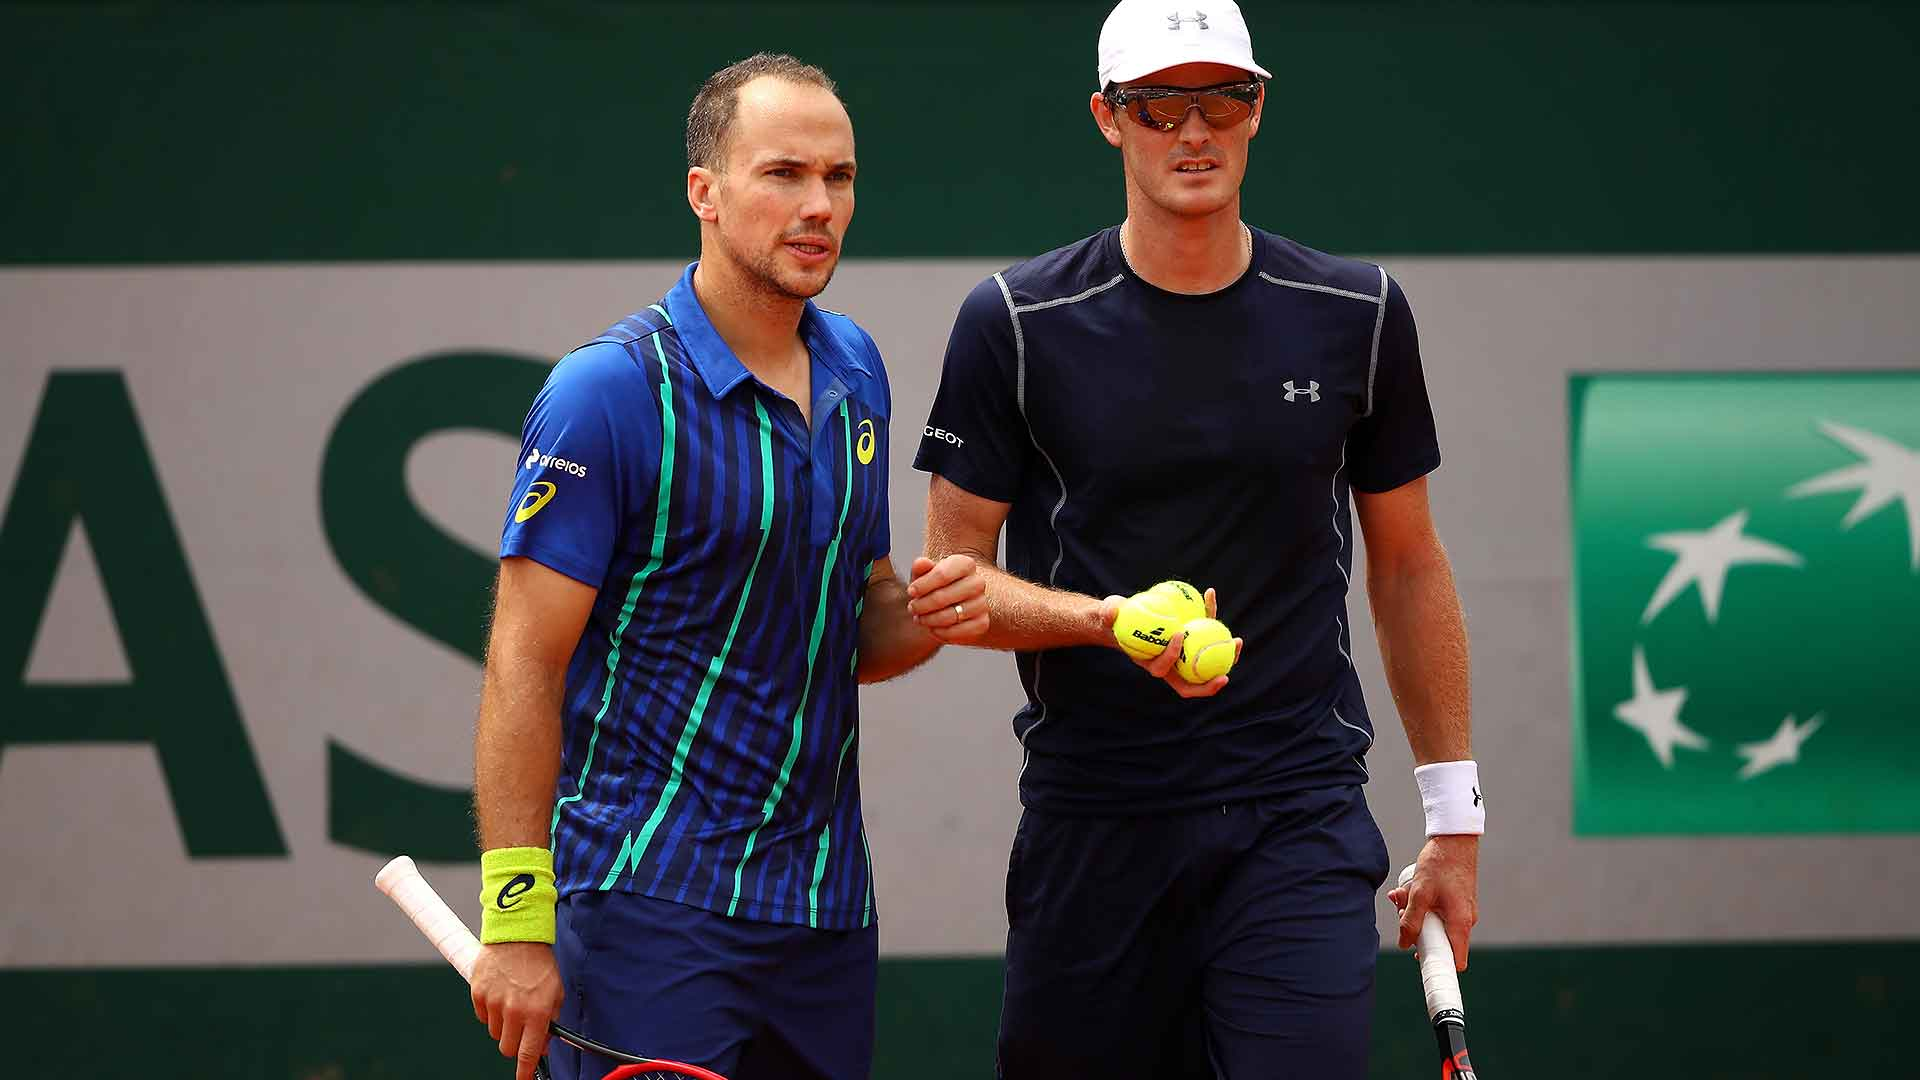 Bruno Soares and Jamie Murray aim to win their second consecutive Grand Slam event.